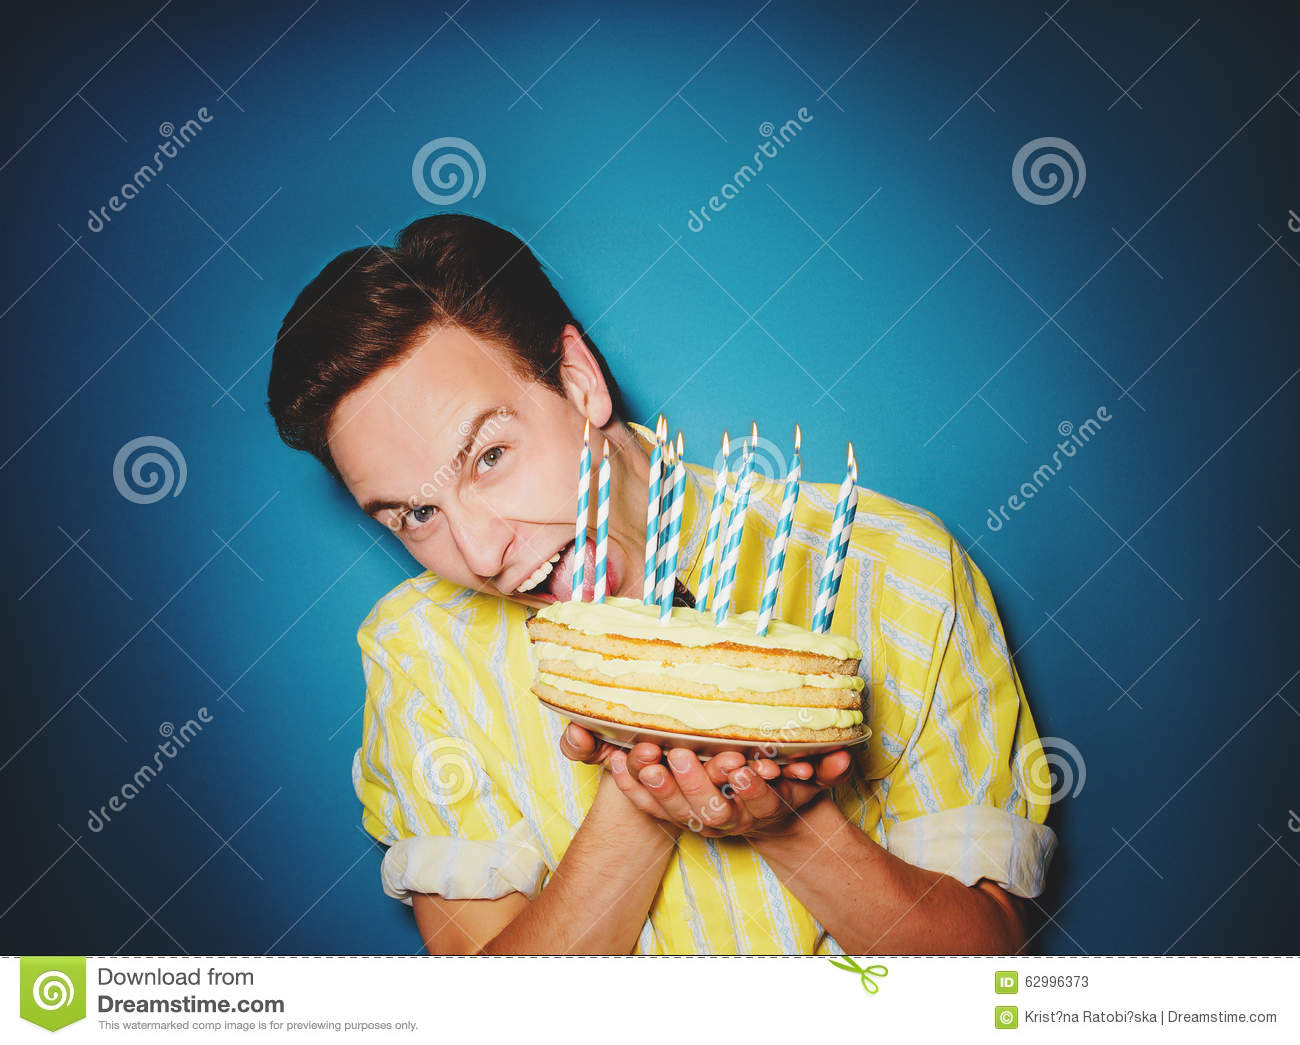 Party Celebration With Young Man With A Cake Stock Photo Image